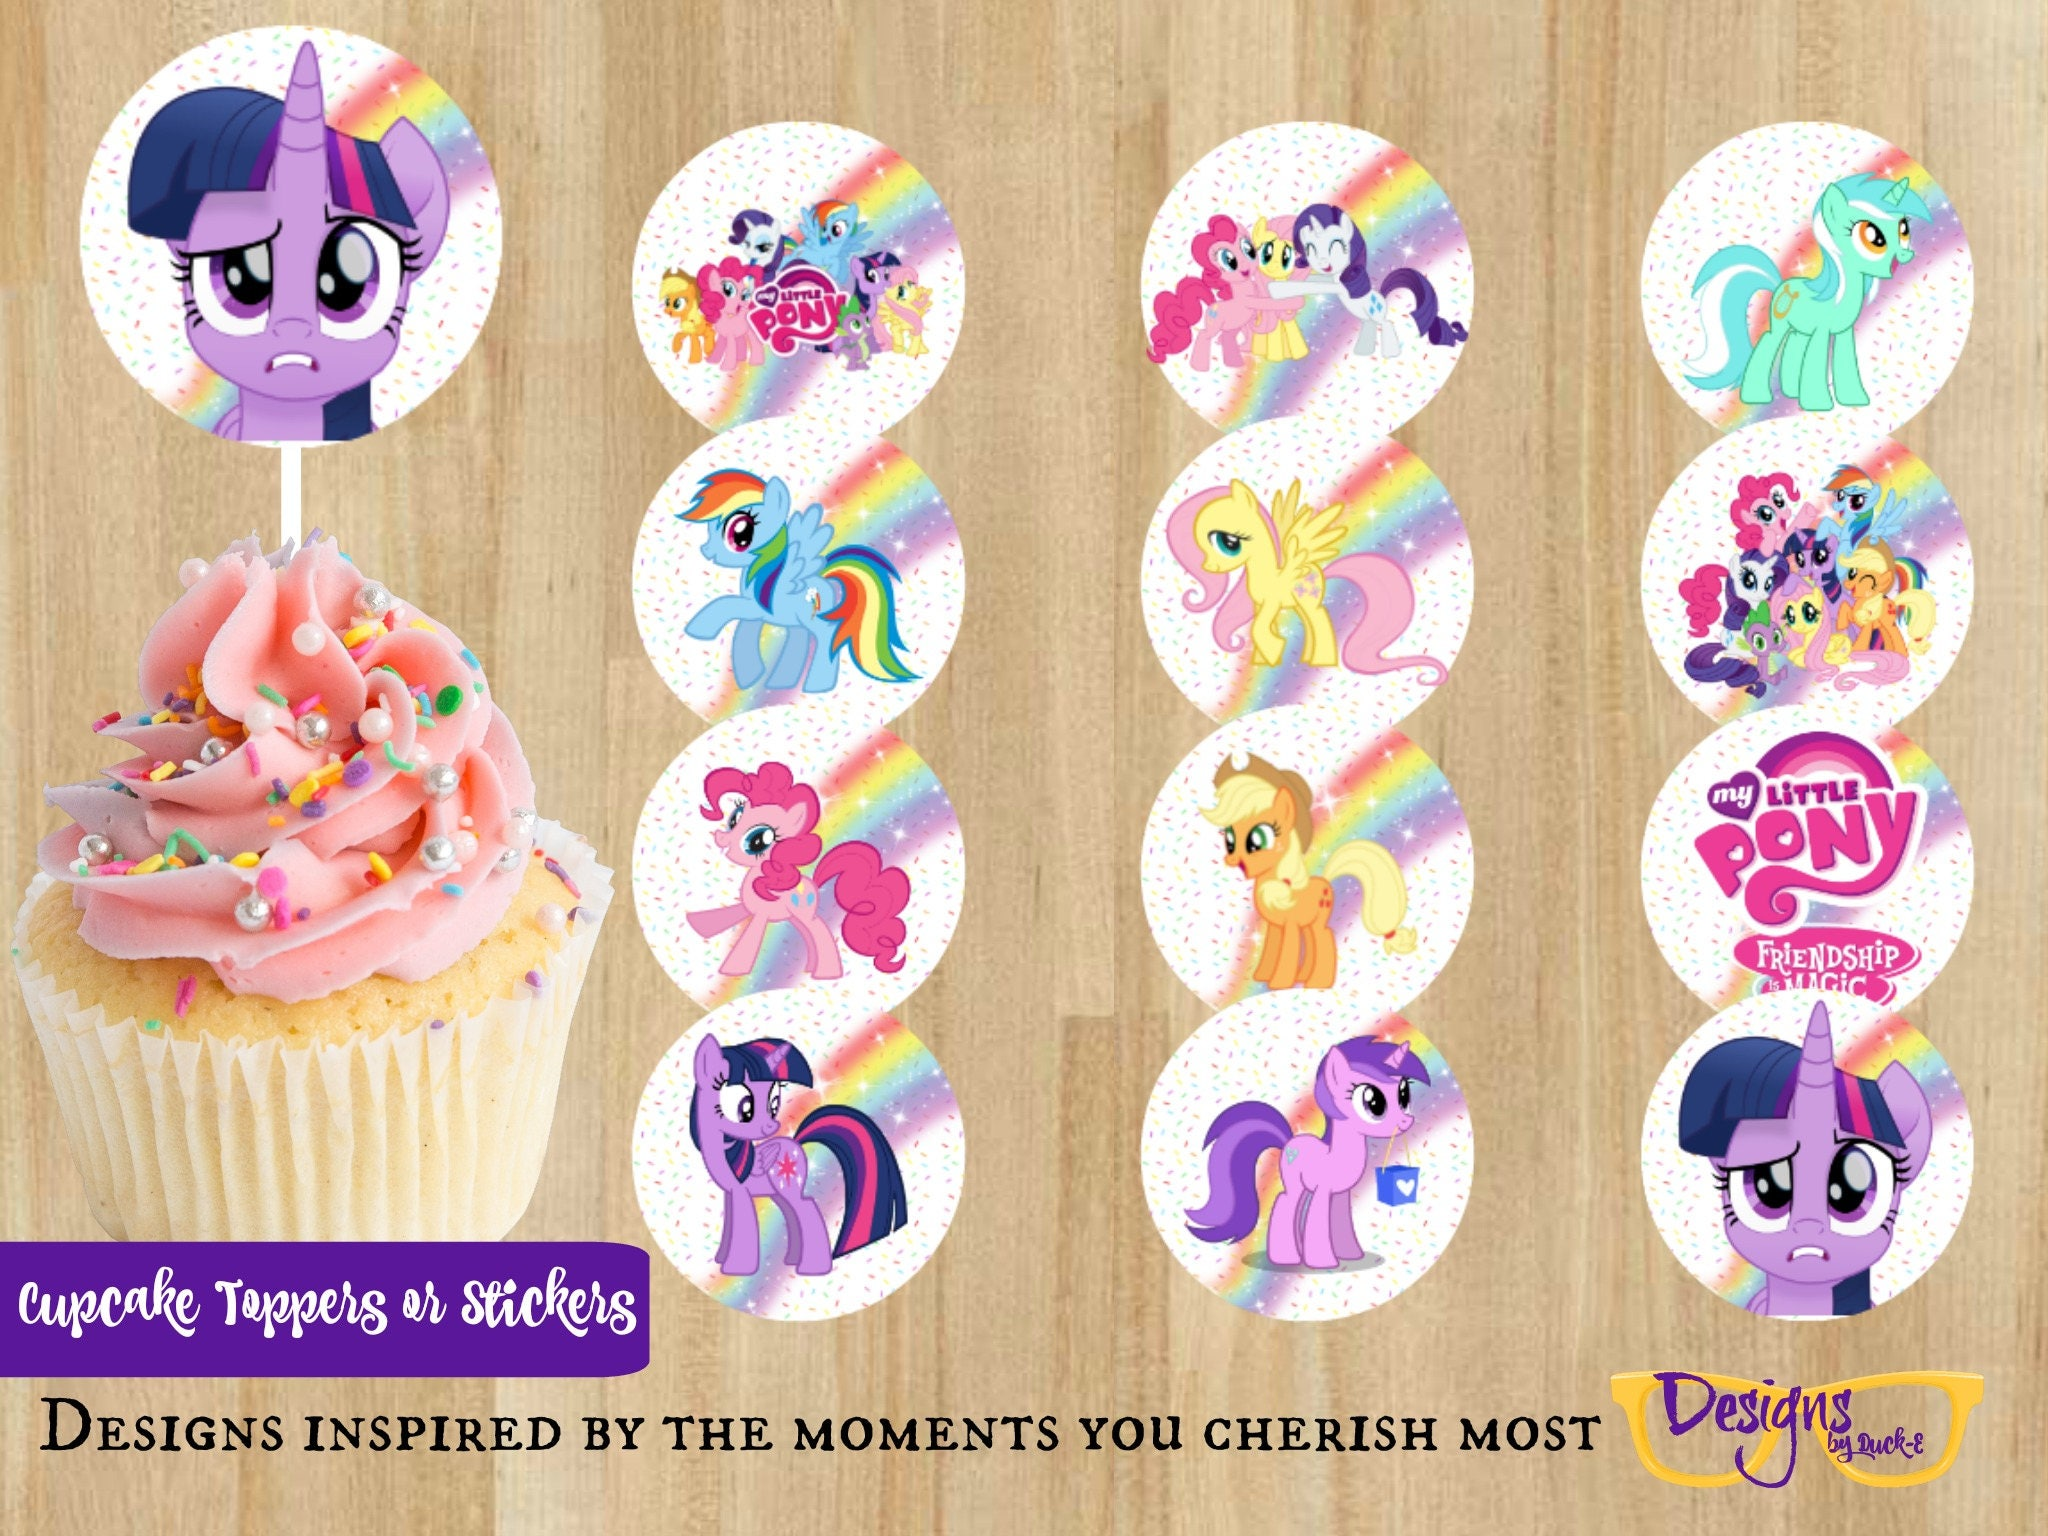 My Little Pony Birthday Celebration Party Printable Sticker Cupcake Toppers 2 Round Template Digital Download